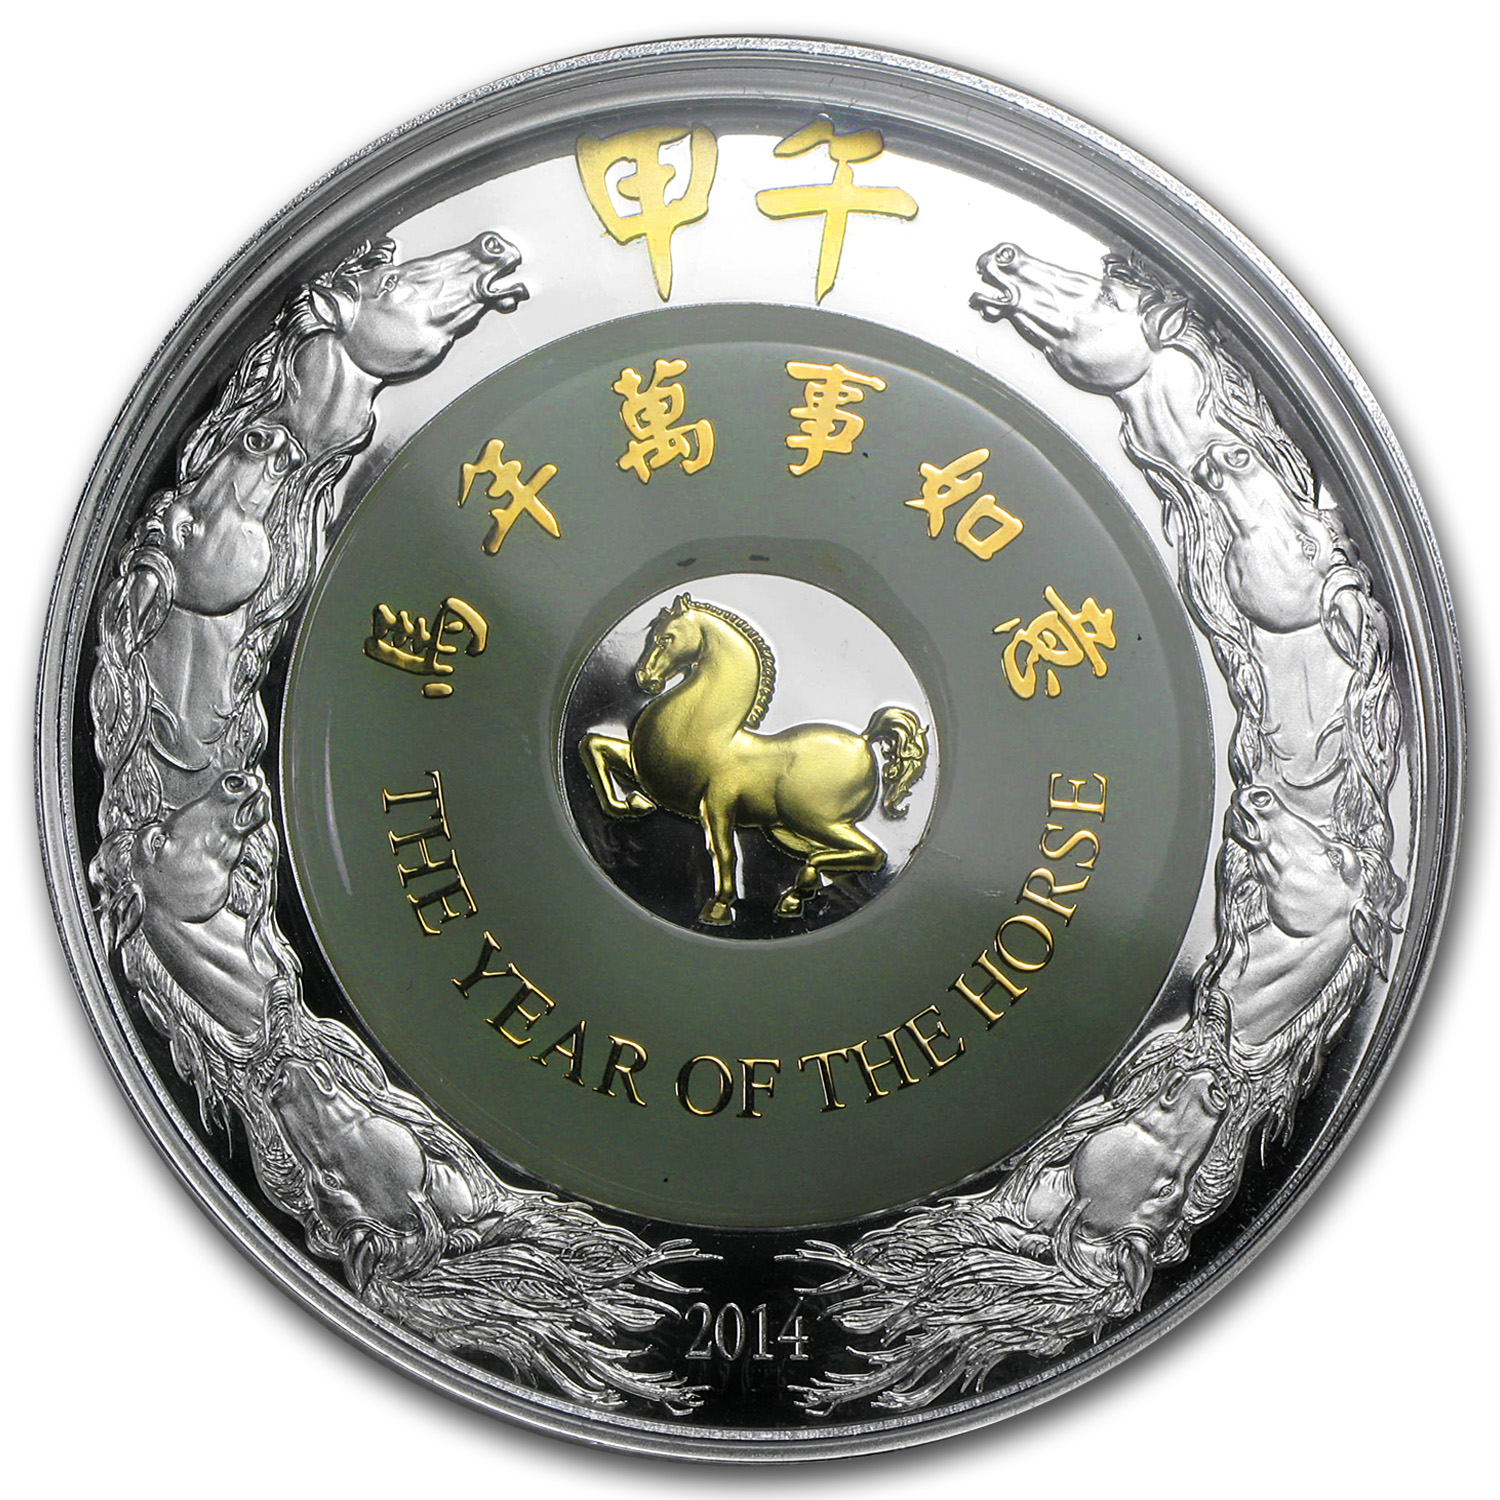 2014 2 oz Laos Proof Silver & Jade Year of the Horse Coin